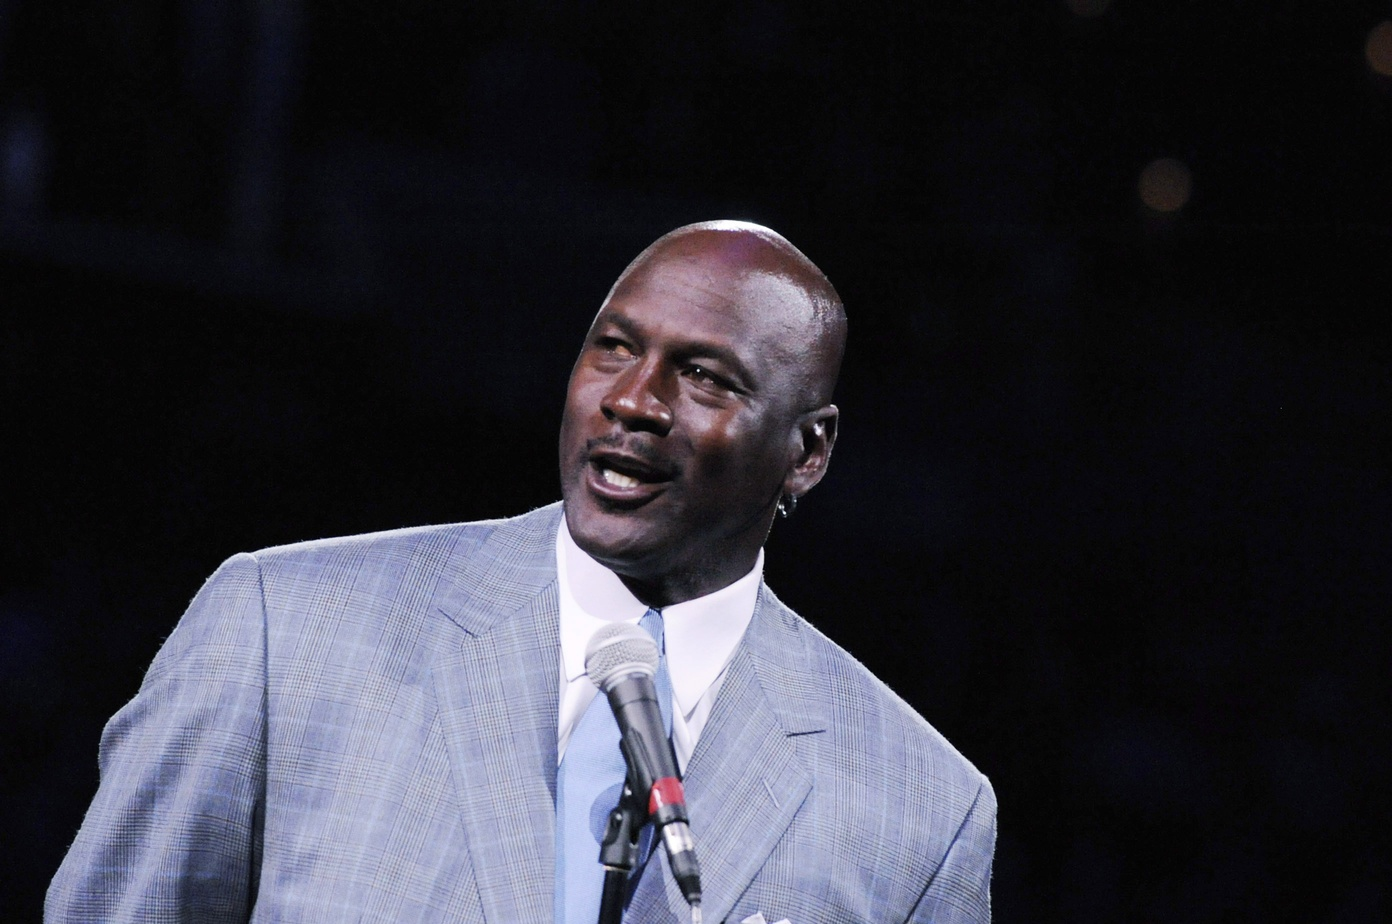 Michael Jordan Continues To Litigate Over Intellectual Property Issues